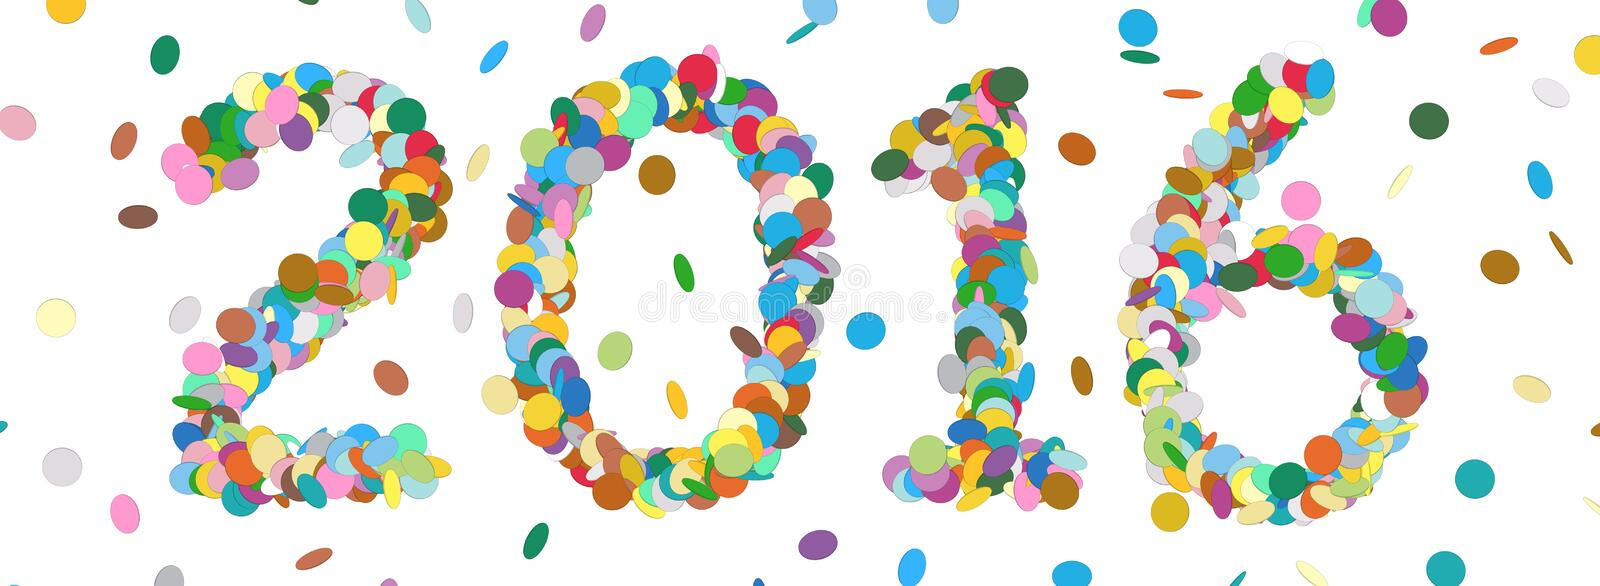 Abstract Confetti Year Date - 2016 - Colorful Panorama Vector vector illustration